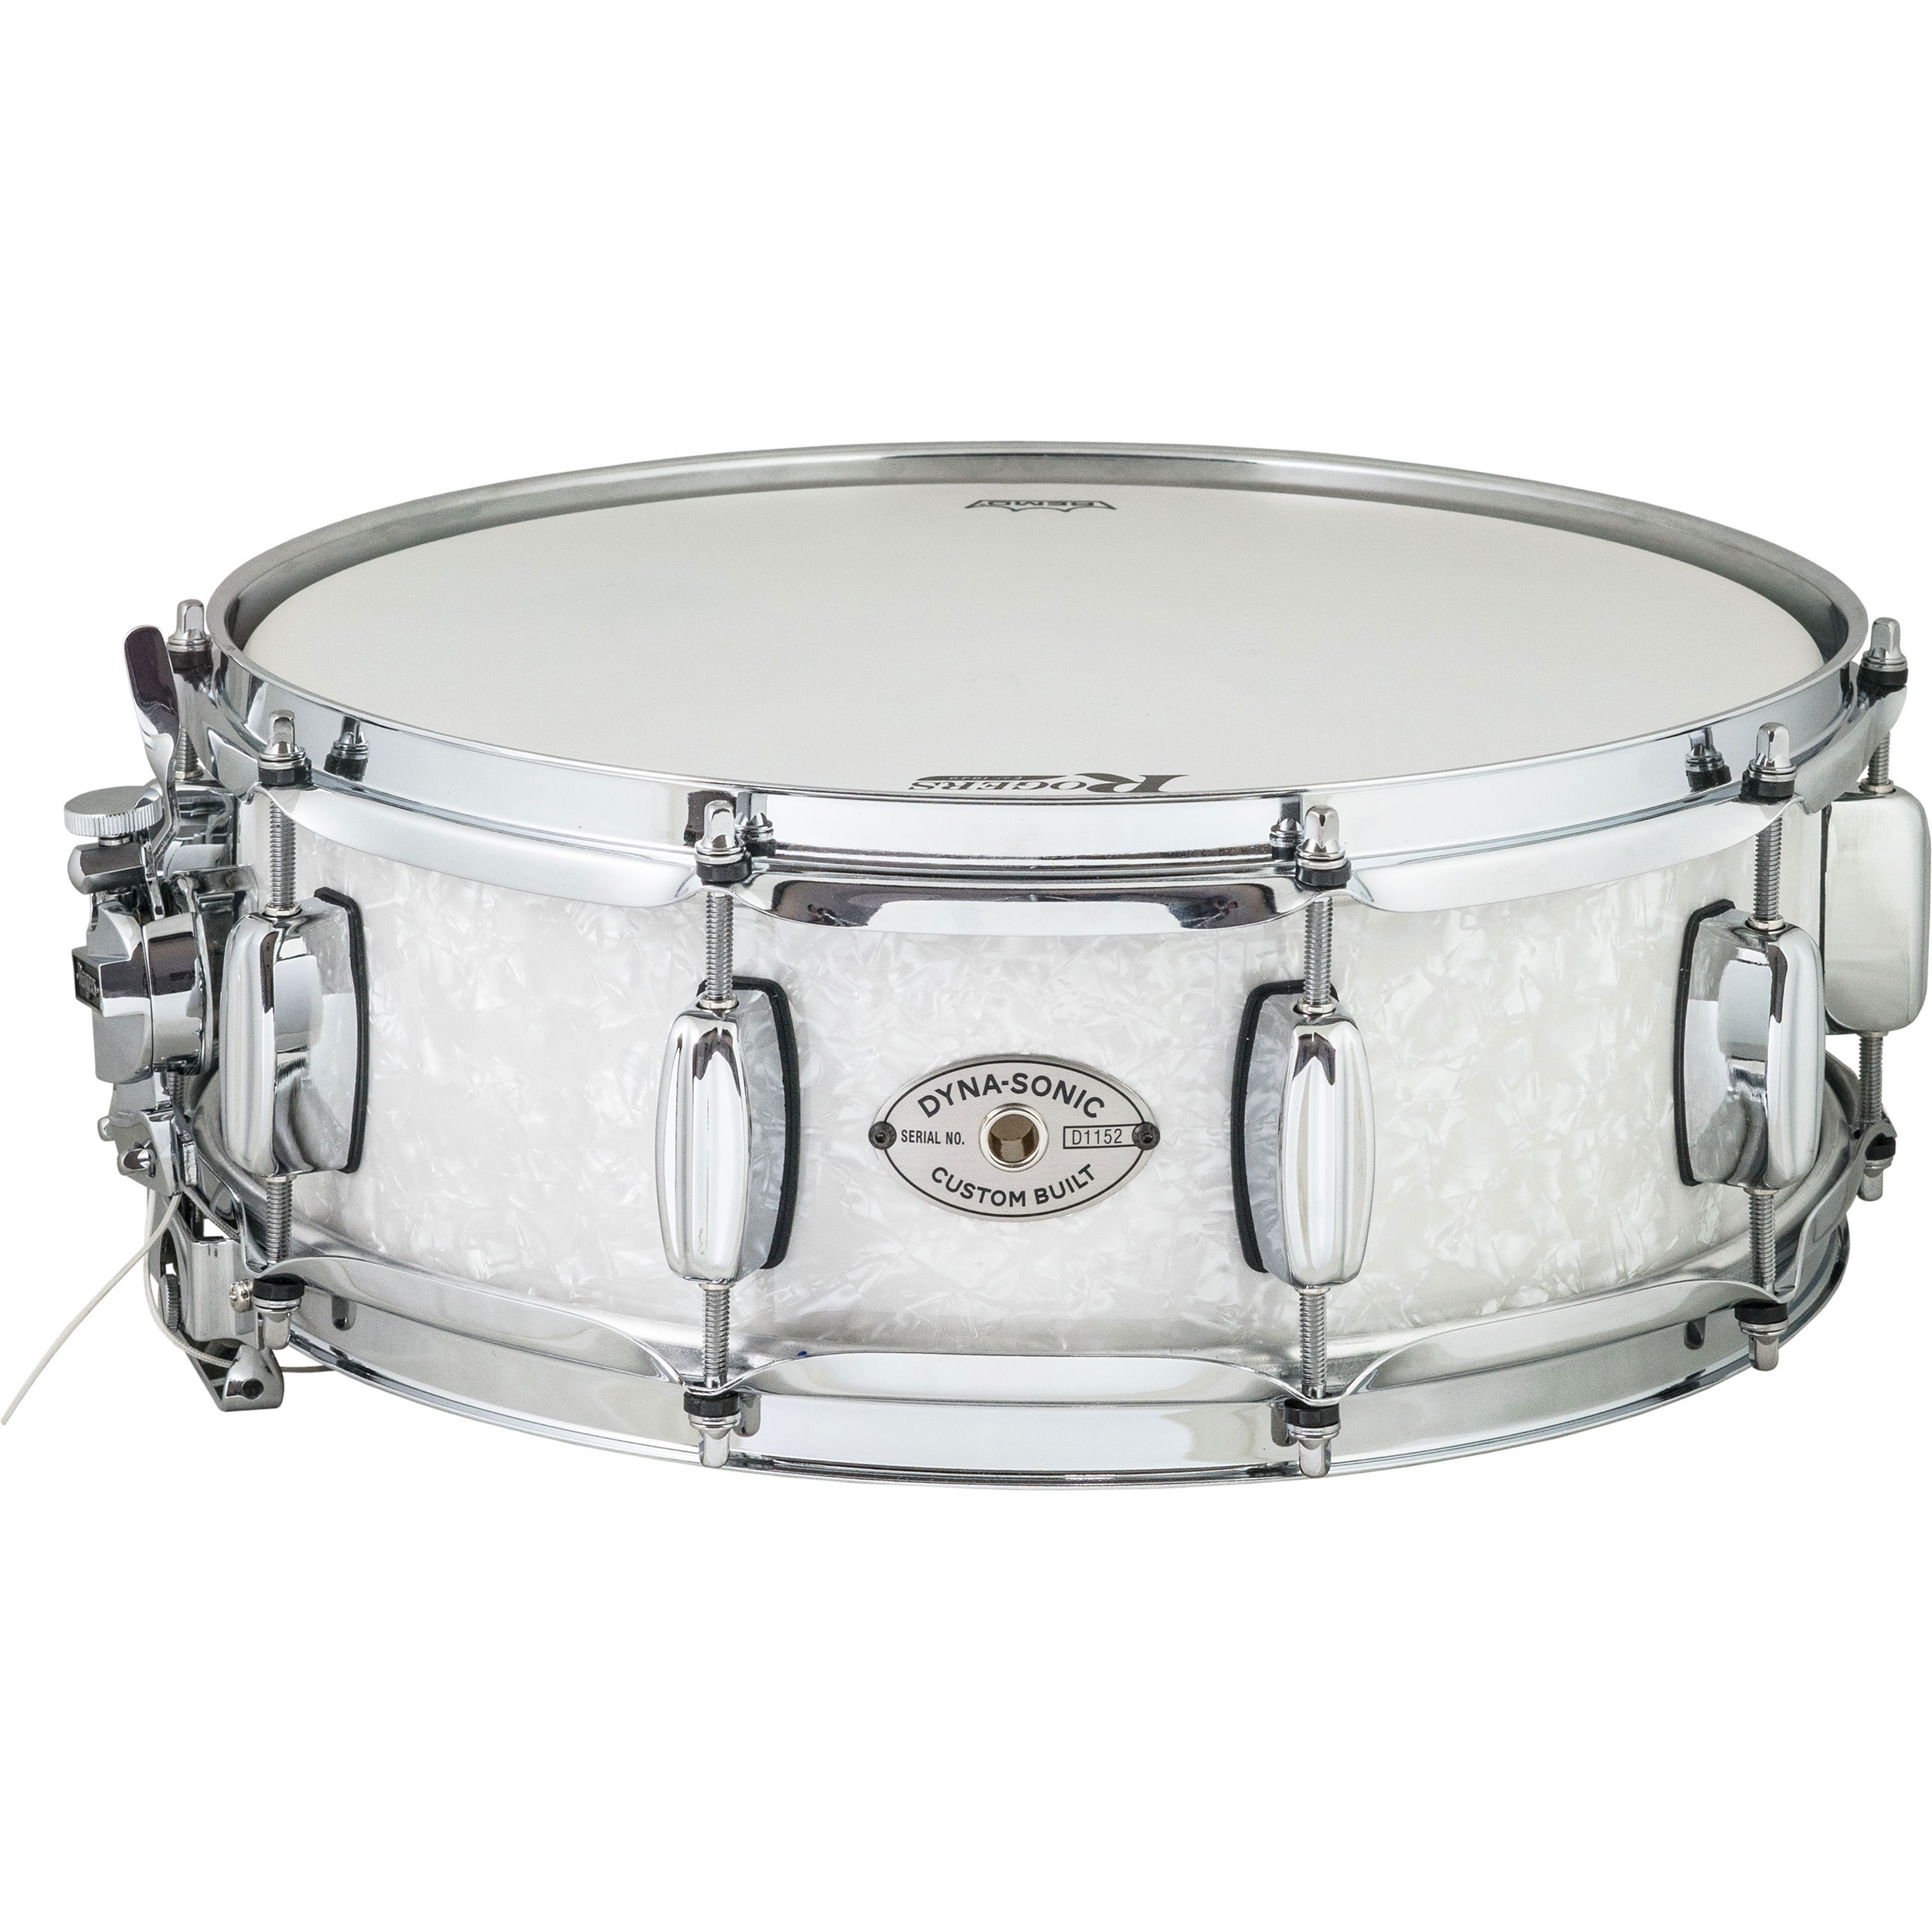 "Rogers 5"" x 14"" Dyna-Sonic Wood Shell Snare Drum in White Marine Pearl"